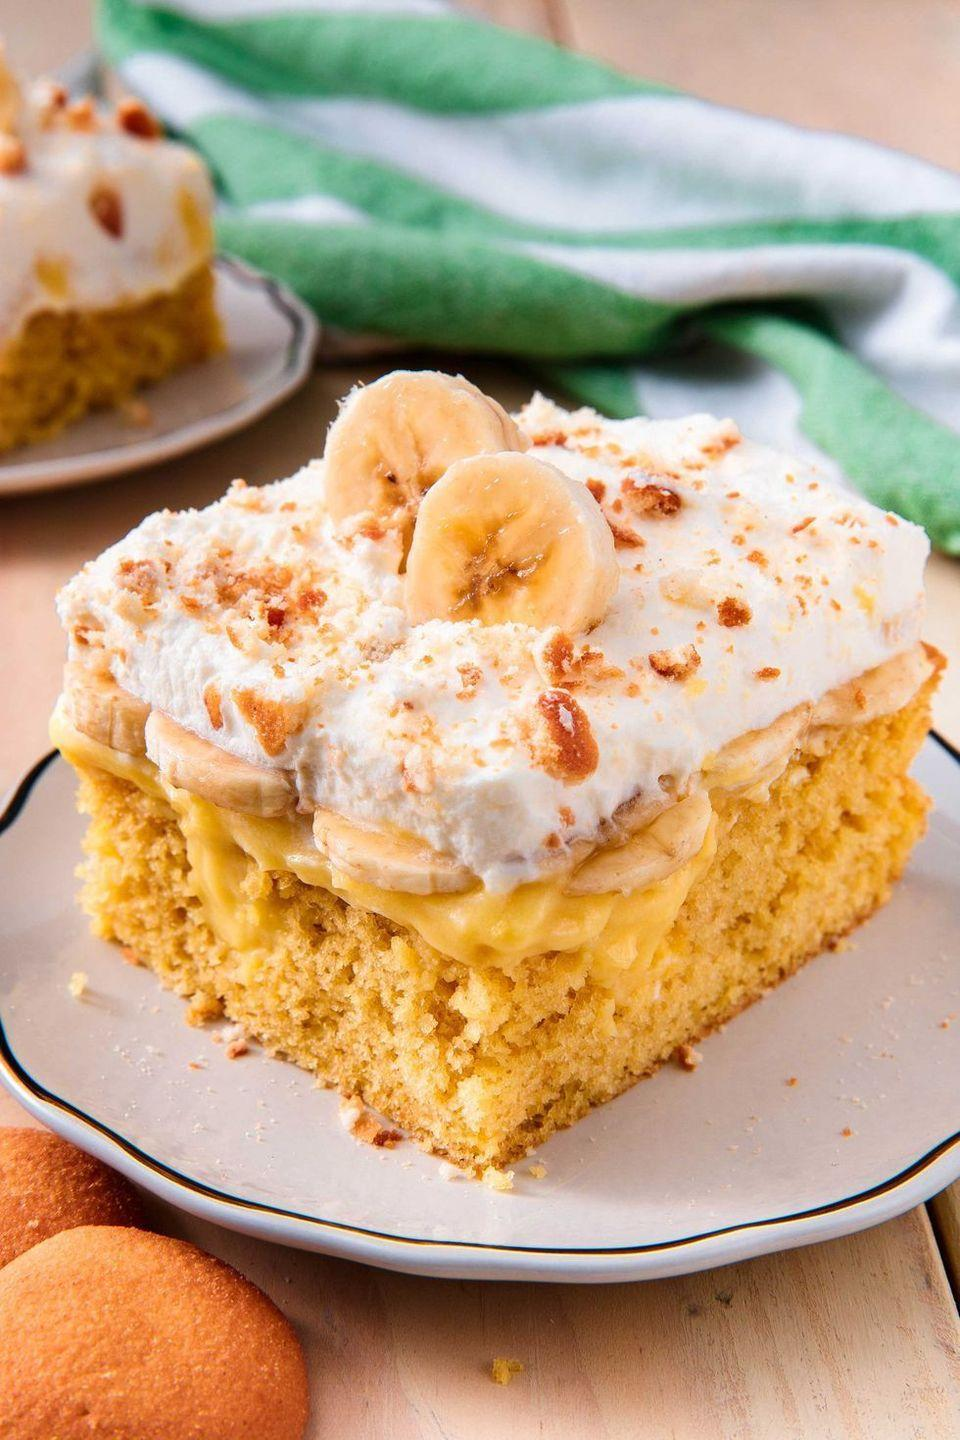 """<p>Pies aren't the only dessert to incorporate bananas into. <a href=""""https://www.goodhousekeeping.com/food-recipes/dessert/g757/cake-recipes/"""" rel=""""nofollow noopener"""" target=""""_blank"""" data-ylk=""""slk:This poke cake"""" class=""""link rapid-noclick-resp"""">This poke cake</a> is topped with a lattice layering of bananas. </p><p><a href=""""https://www.delish.com/cooking/recipe-ideas/recipes/a51407/banana-pudding-poke-cake-recipe/"""" rel=""""nofollow noopener"""" target=""""_blank"""" data-ylk=""""slk:Get the recipe from Delish »"""" class=""""link rapid-noclick-resp""""><em>Get the recipe from Delish »</em> </a></p>"""